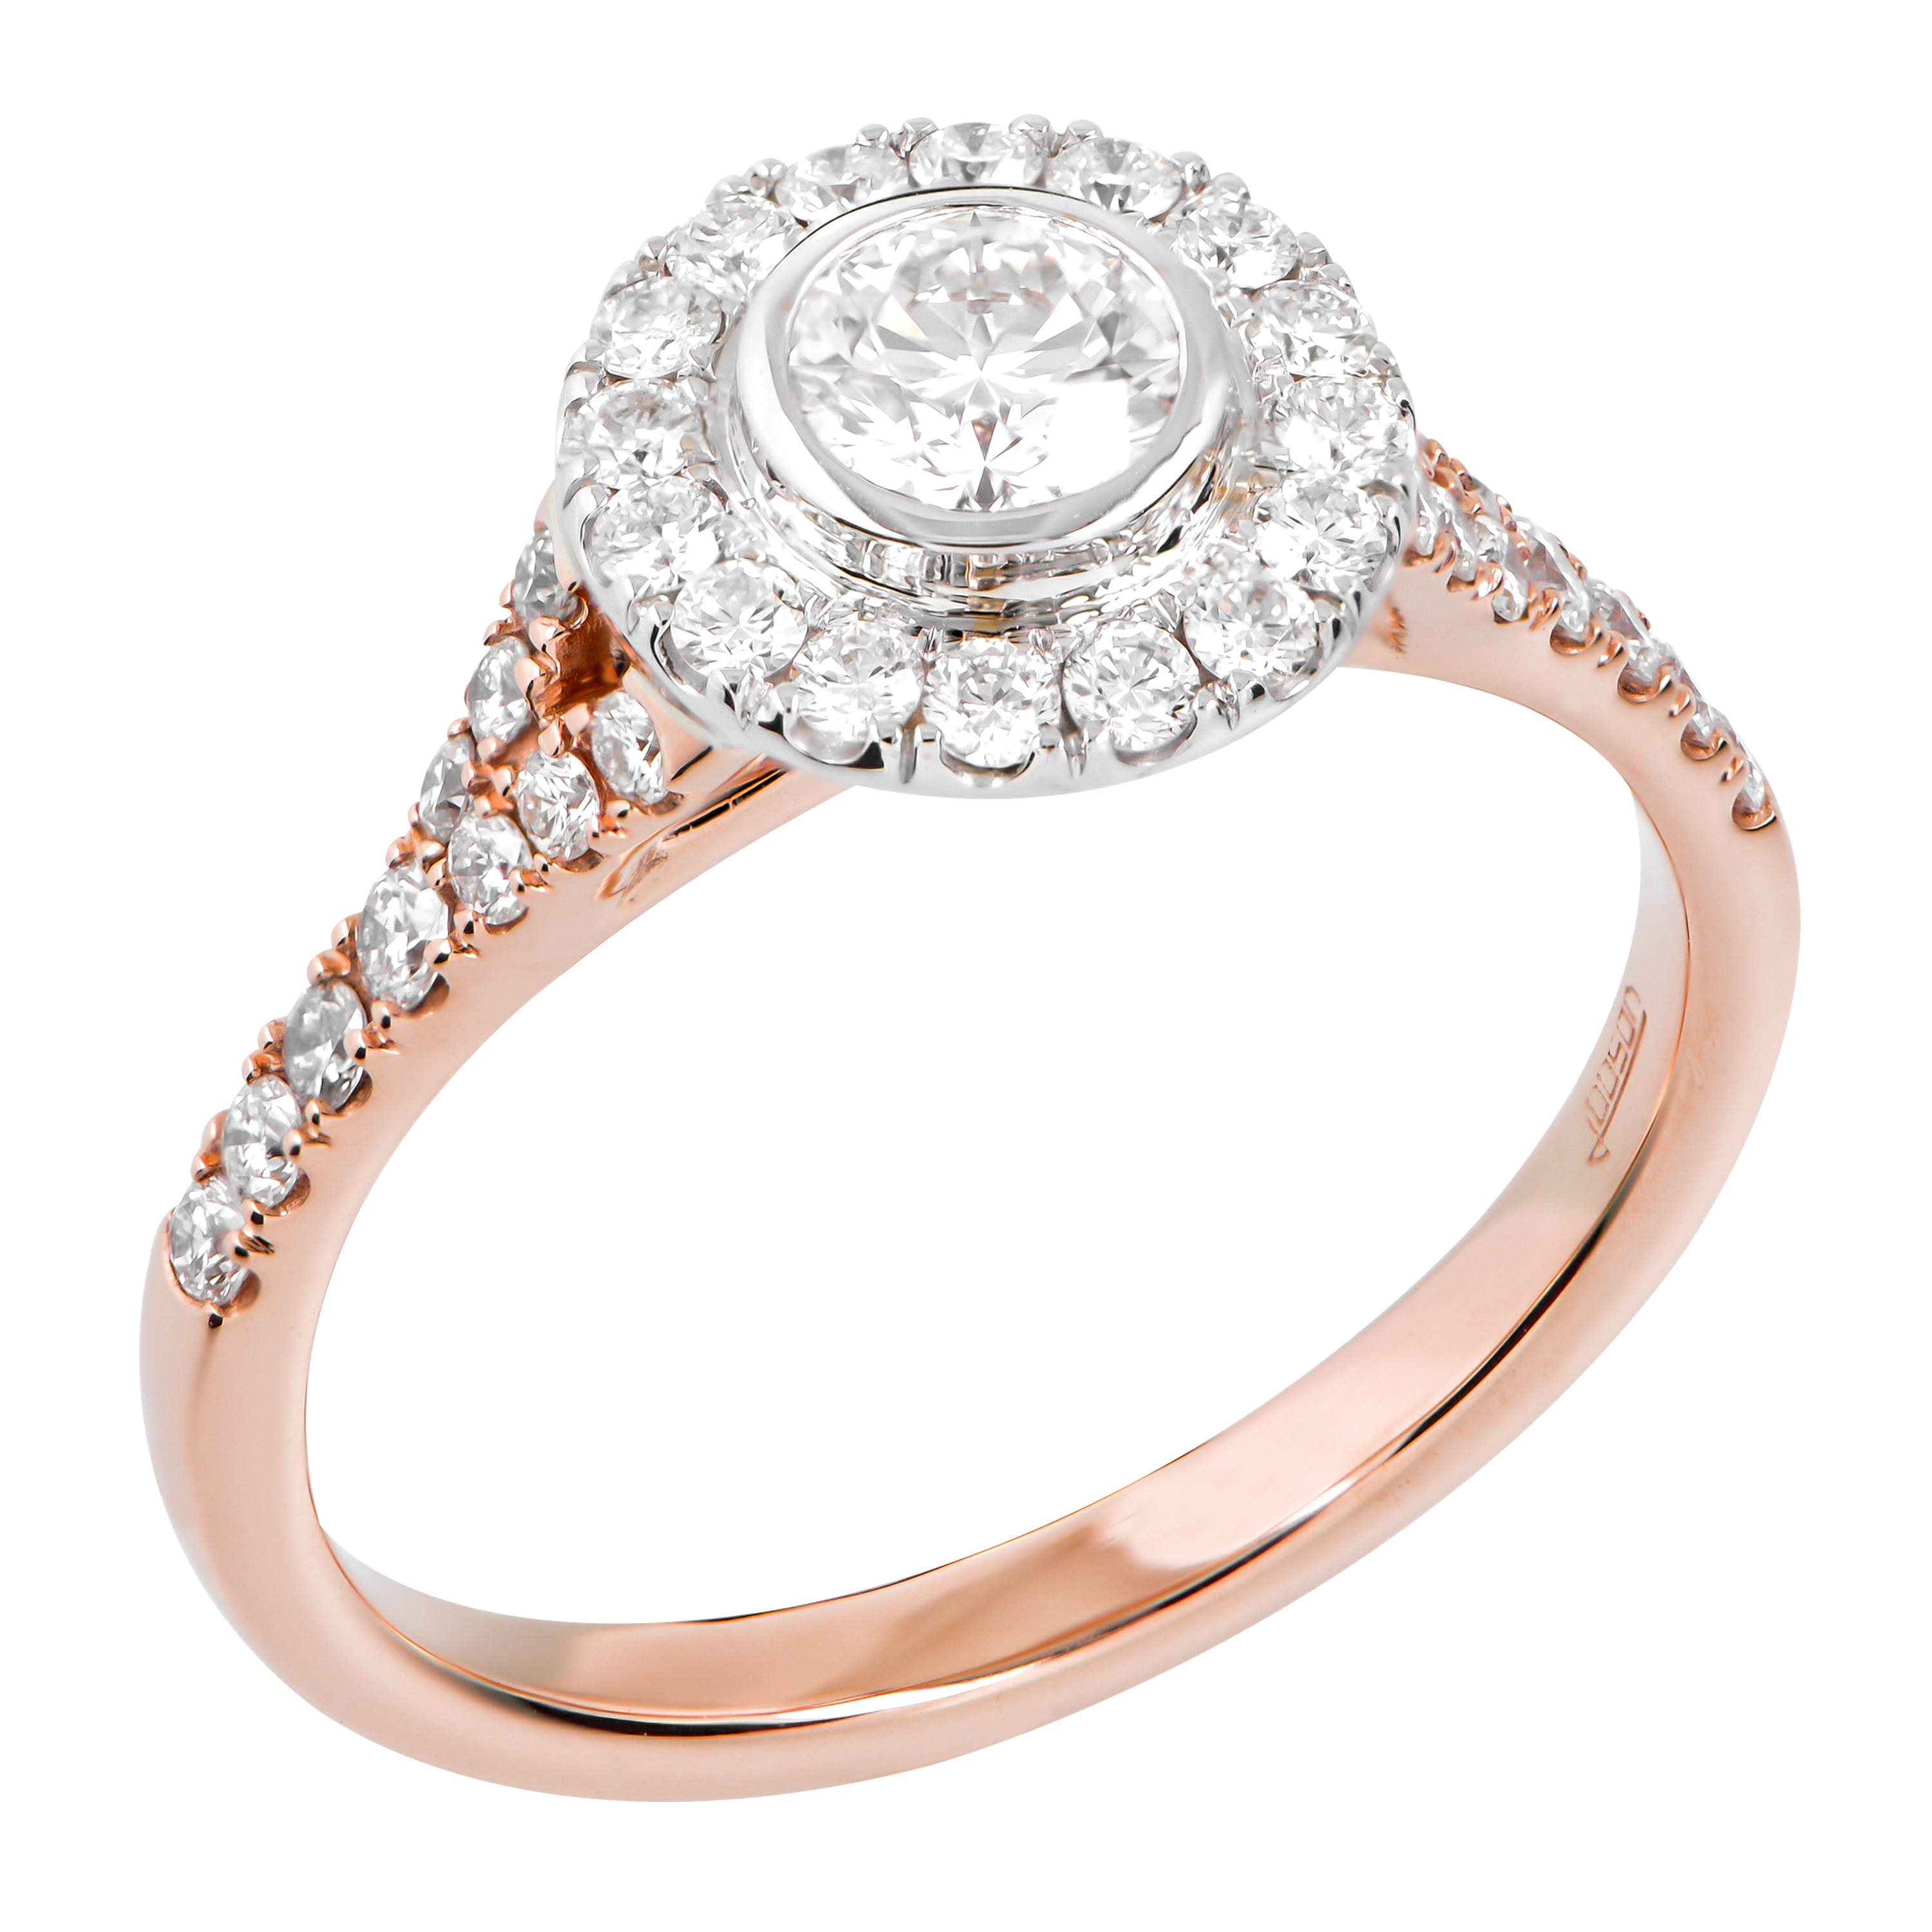 18CT ROSE AND WHITE GOLD DIAMOND ENGAGEMENT RING